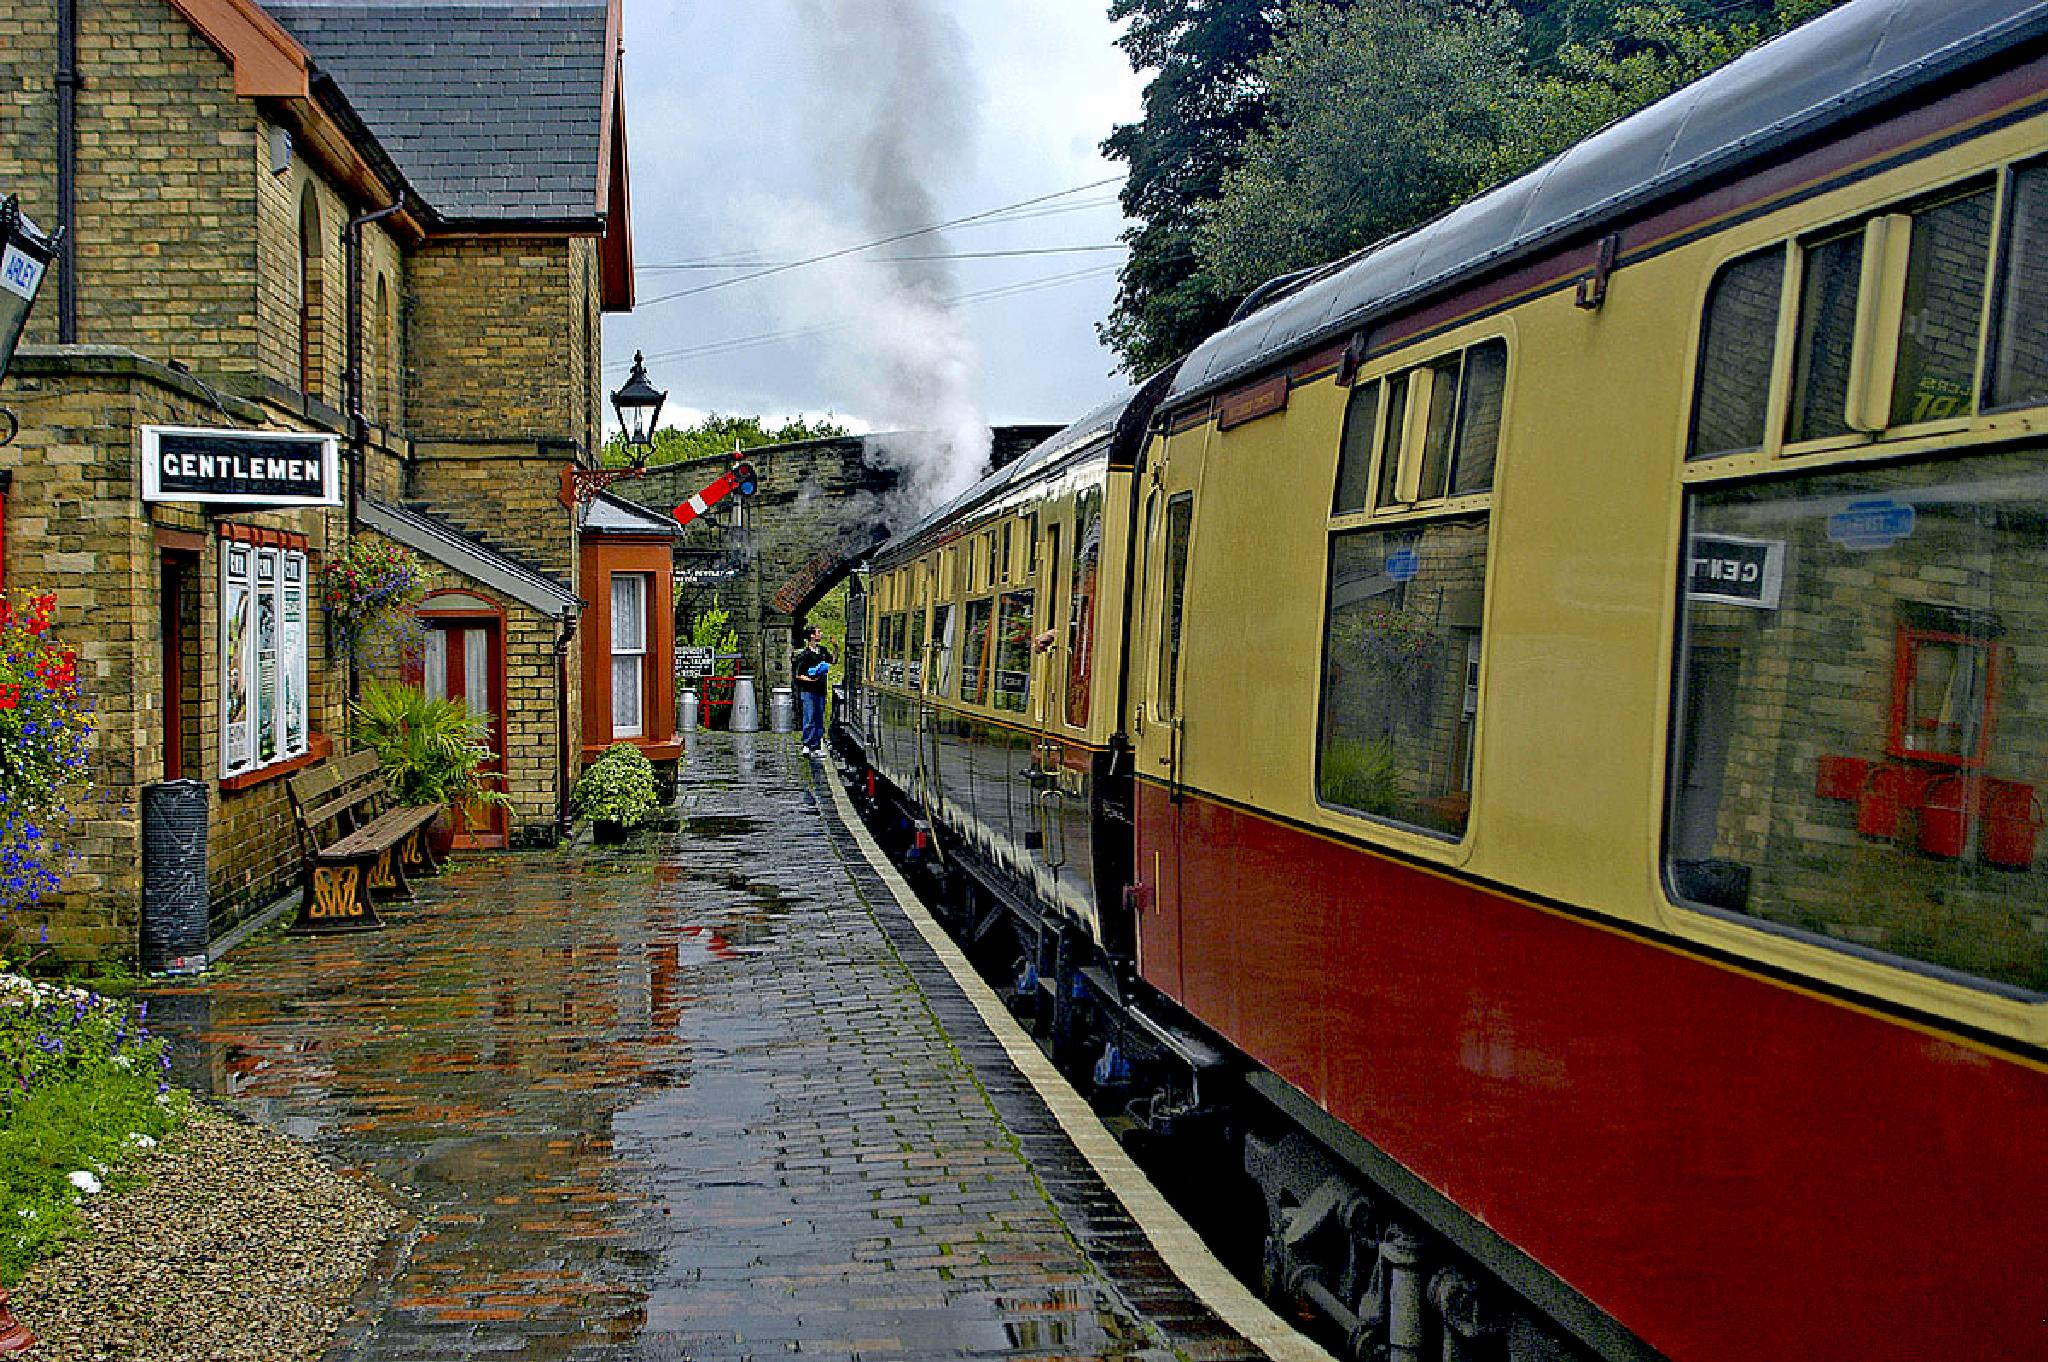 After the rain. Severn Trent Railway. United Kingdom. by Malcolm White